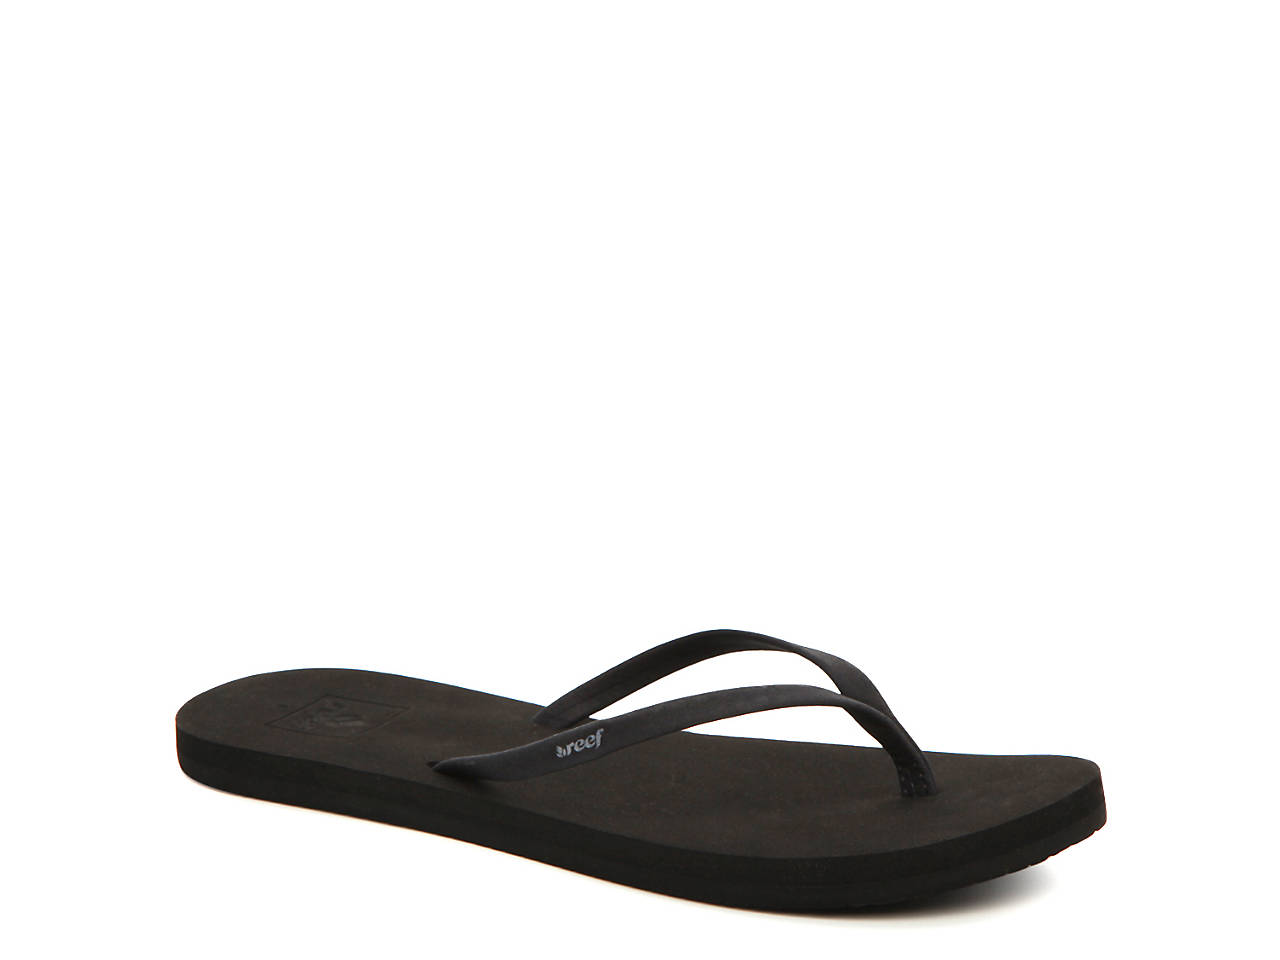 Bliss Nights Flip Flop